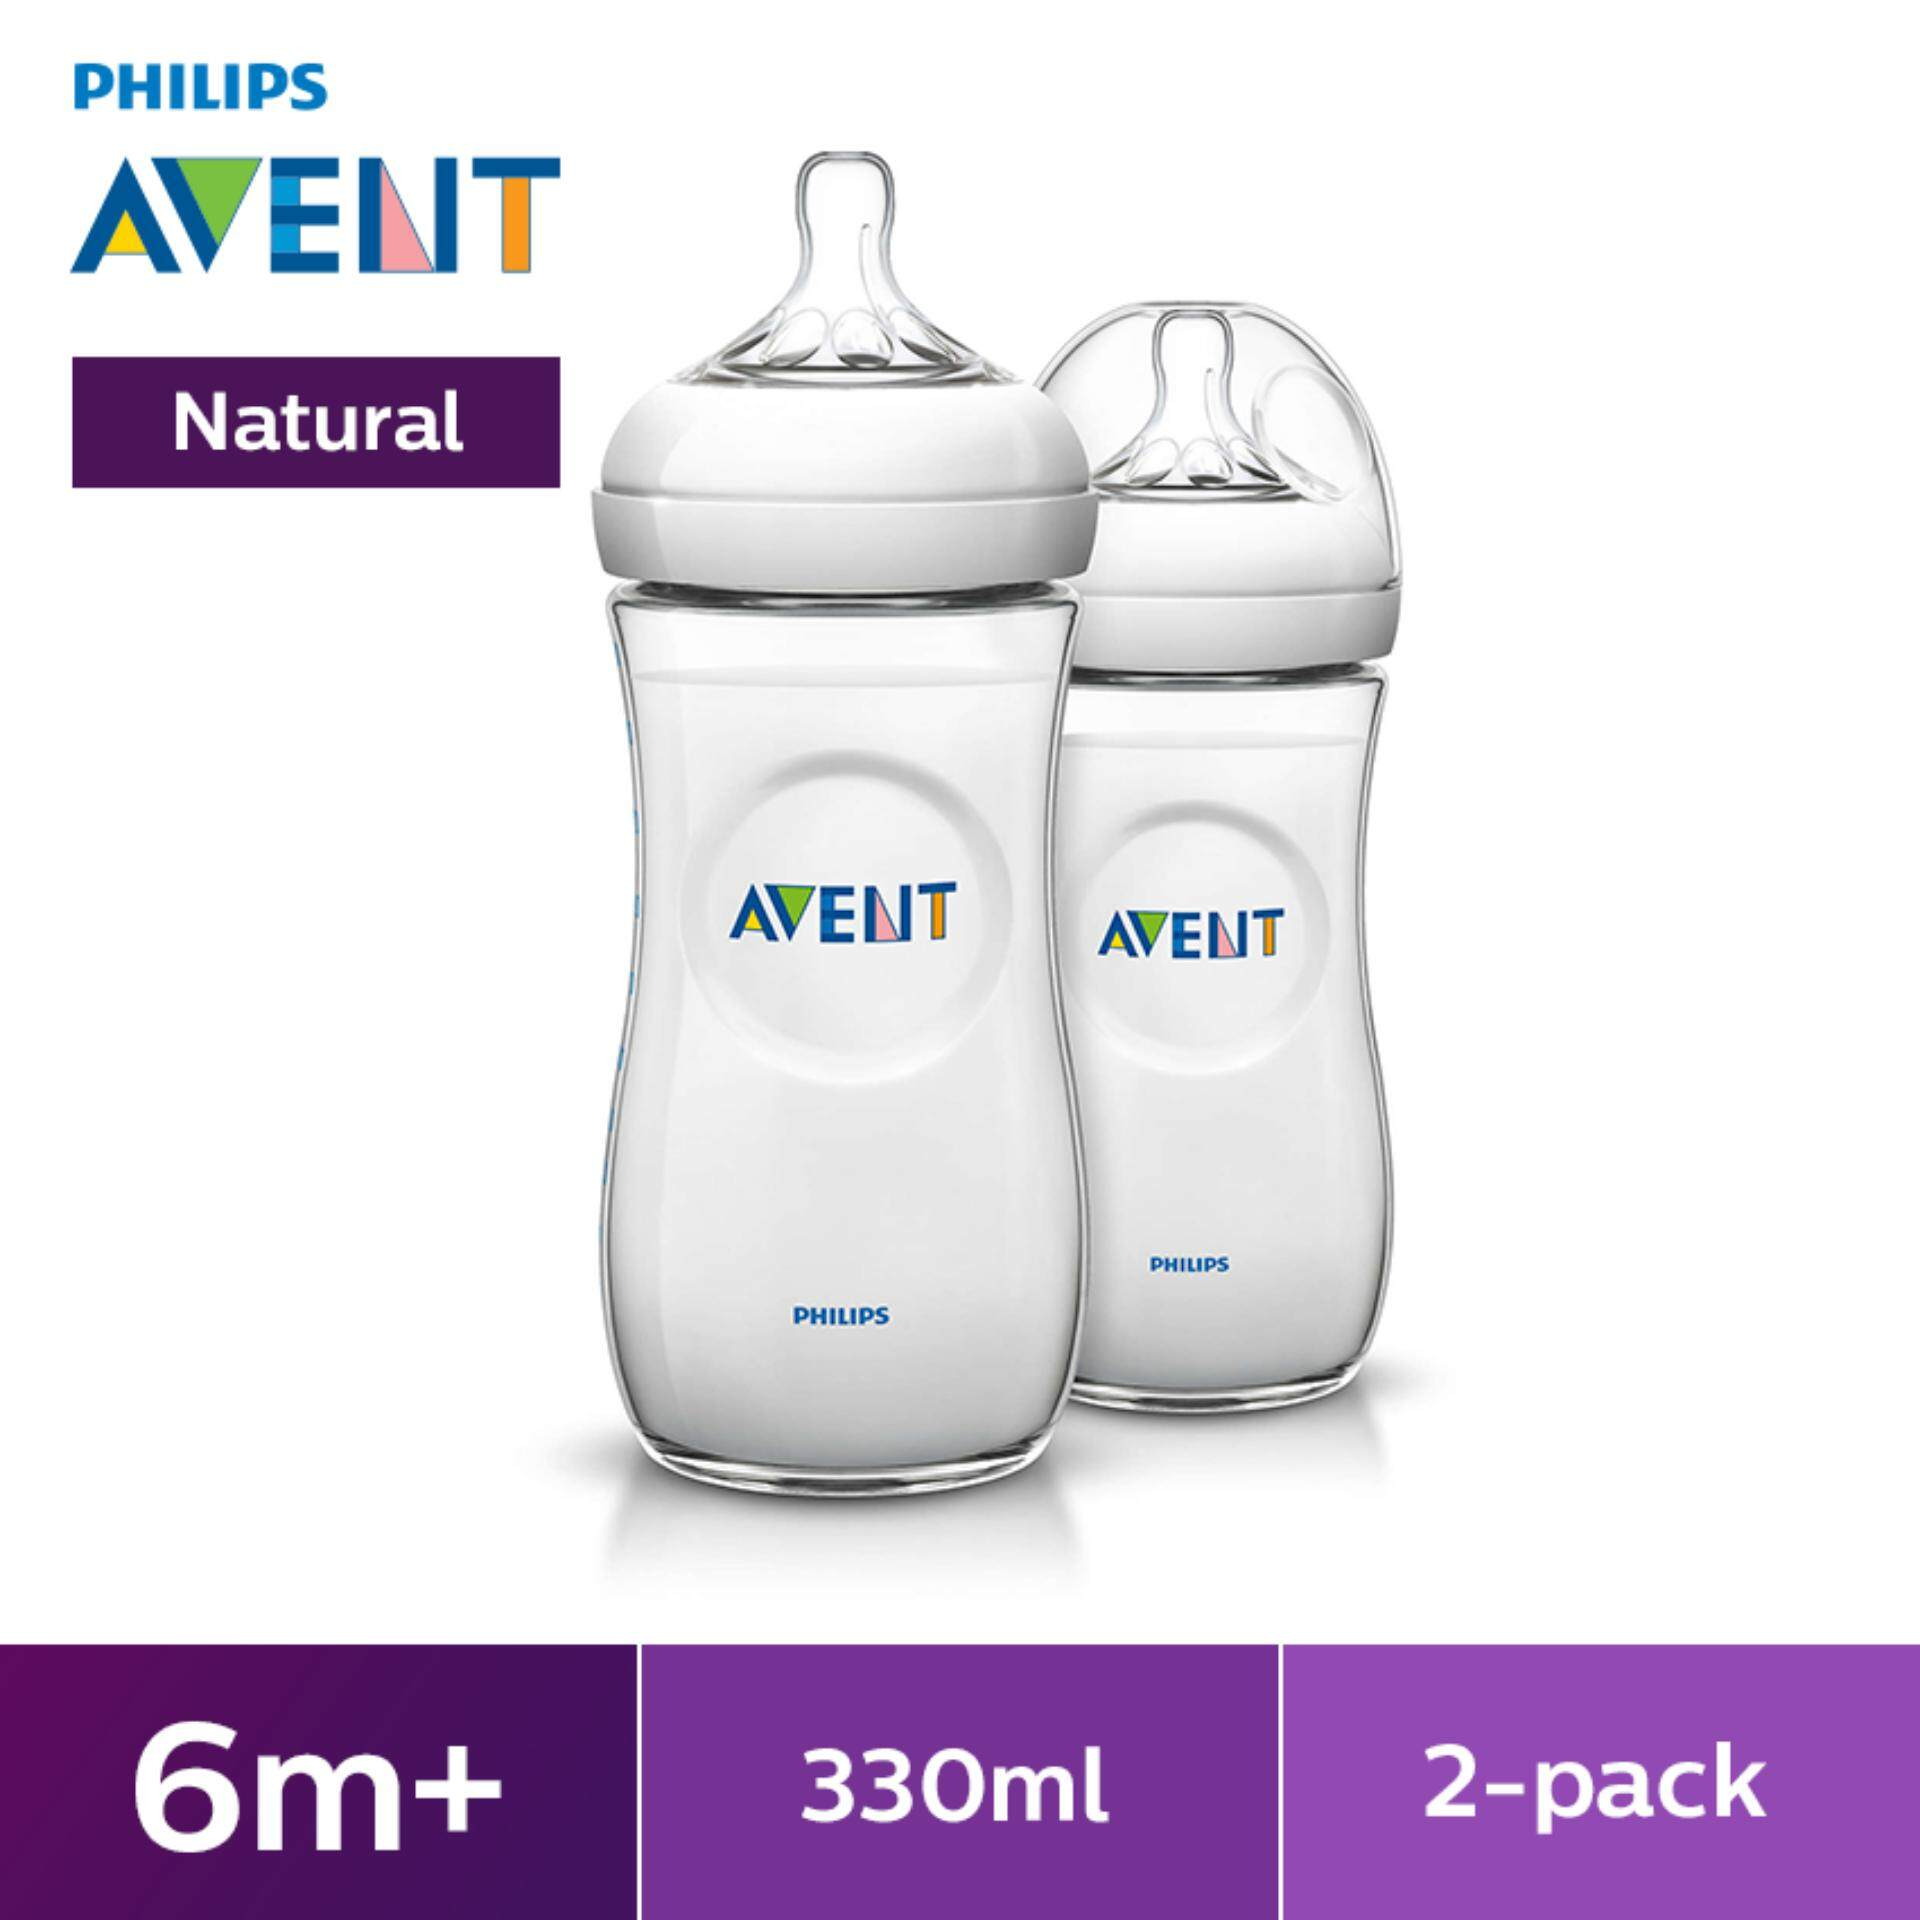 Philips Avent Natural Baby Bottle 11oz/330ml Scf696/23 By Philips Avent.